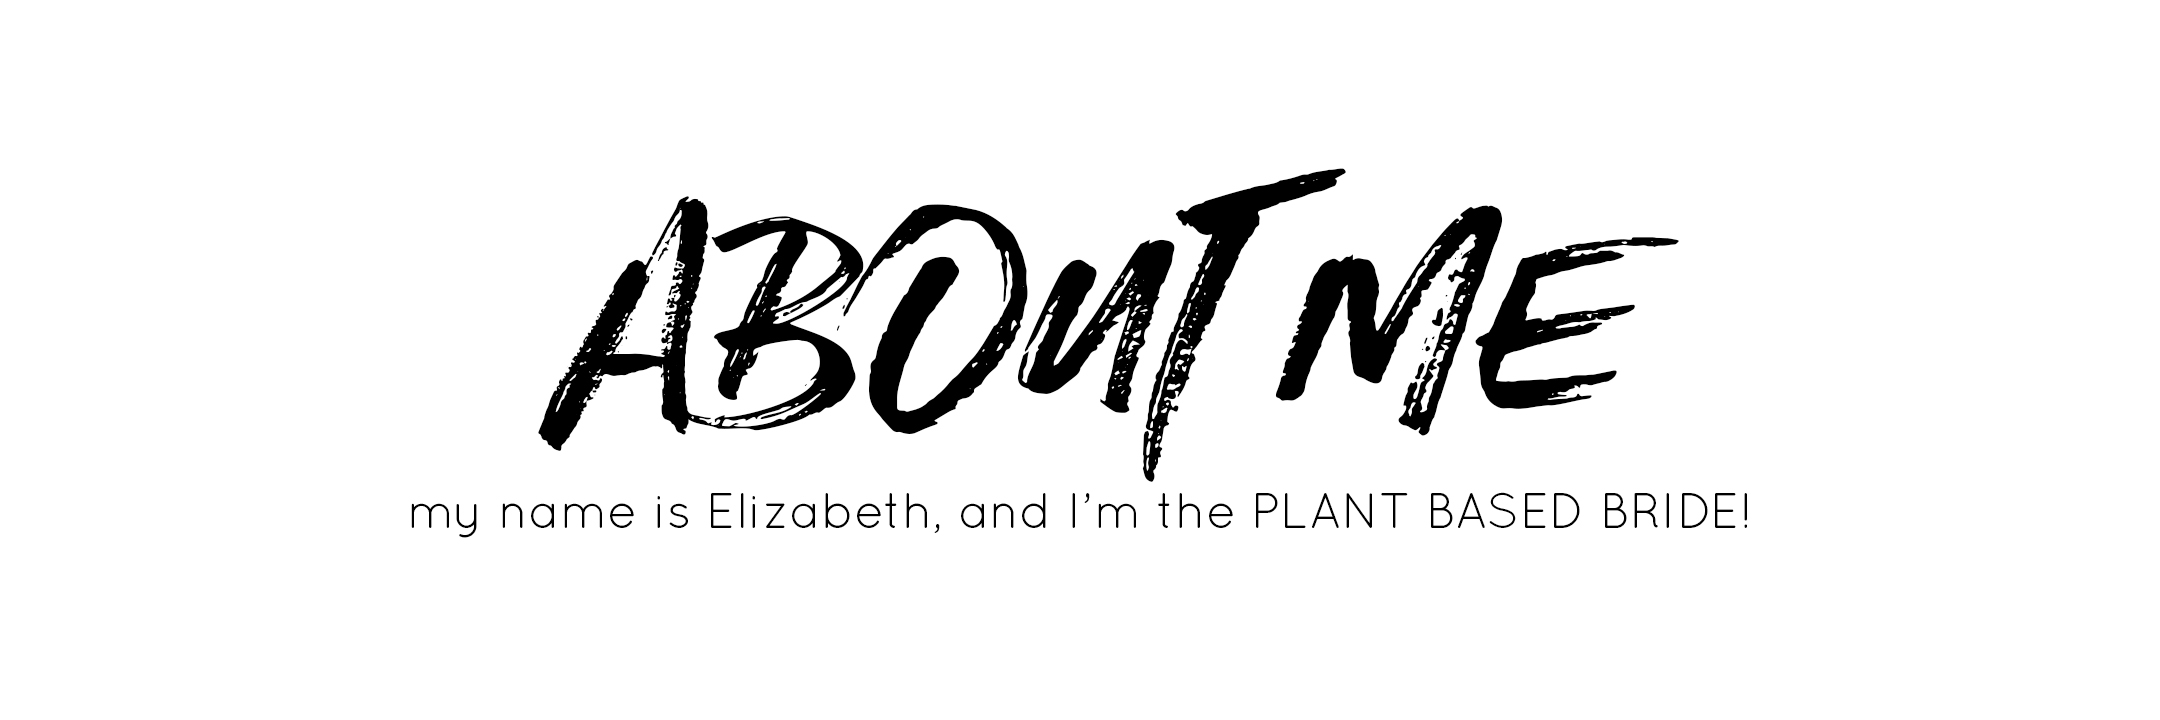 Hi, my name is Elizabeth, and I'm the Plant Based Bride!